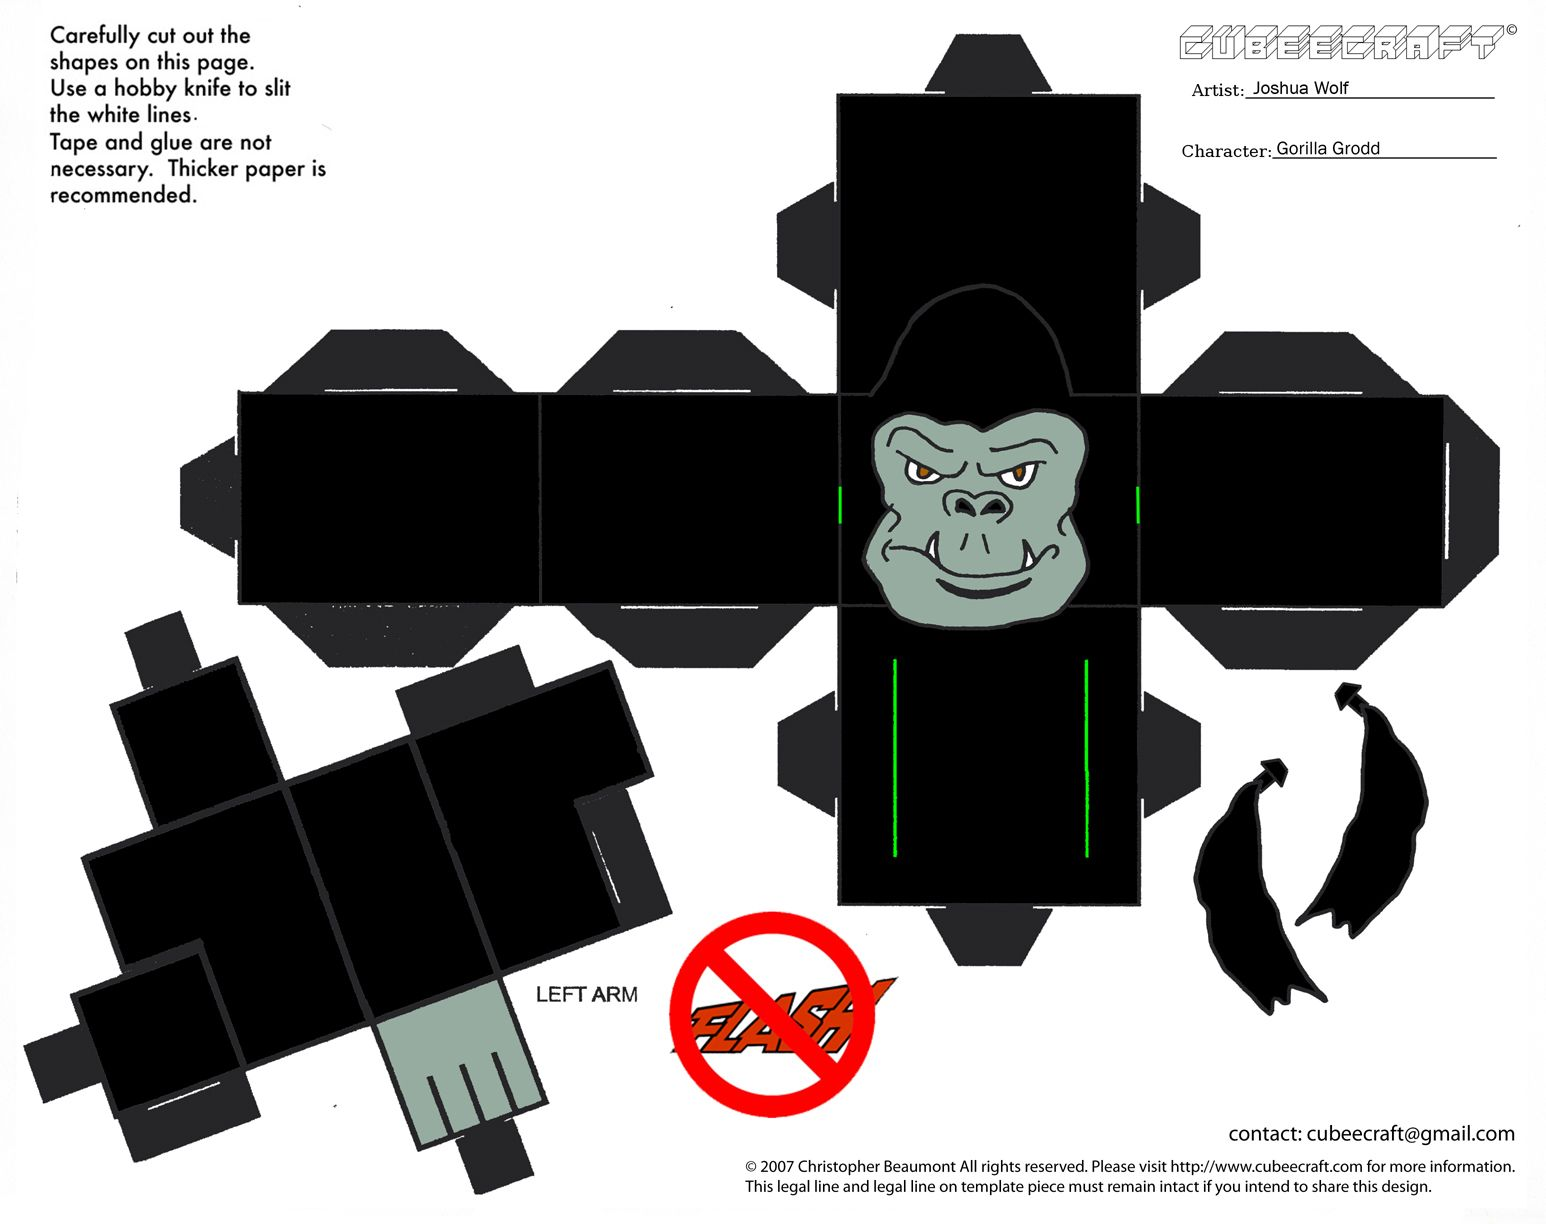 Famous 11 Vuze Search Templates Huge 15 Year Old Job Resume Shaped 15 Year Old Student Resume 1st Job Resume Examples Old 2 Page Resume Staple Soft2014 Calendar Template Pdf Image Detail For  Origami Gorilla Instructions | PAPER TOYS ..